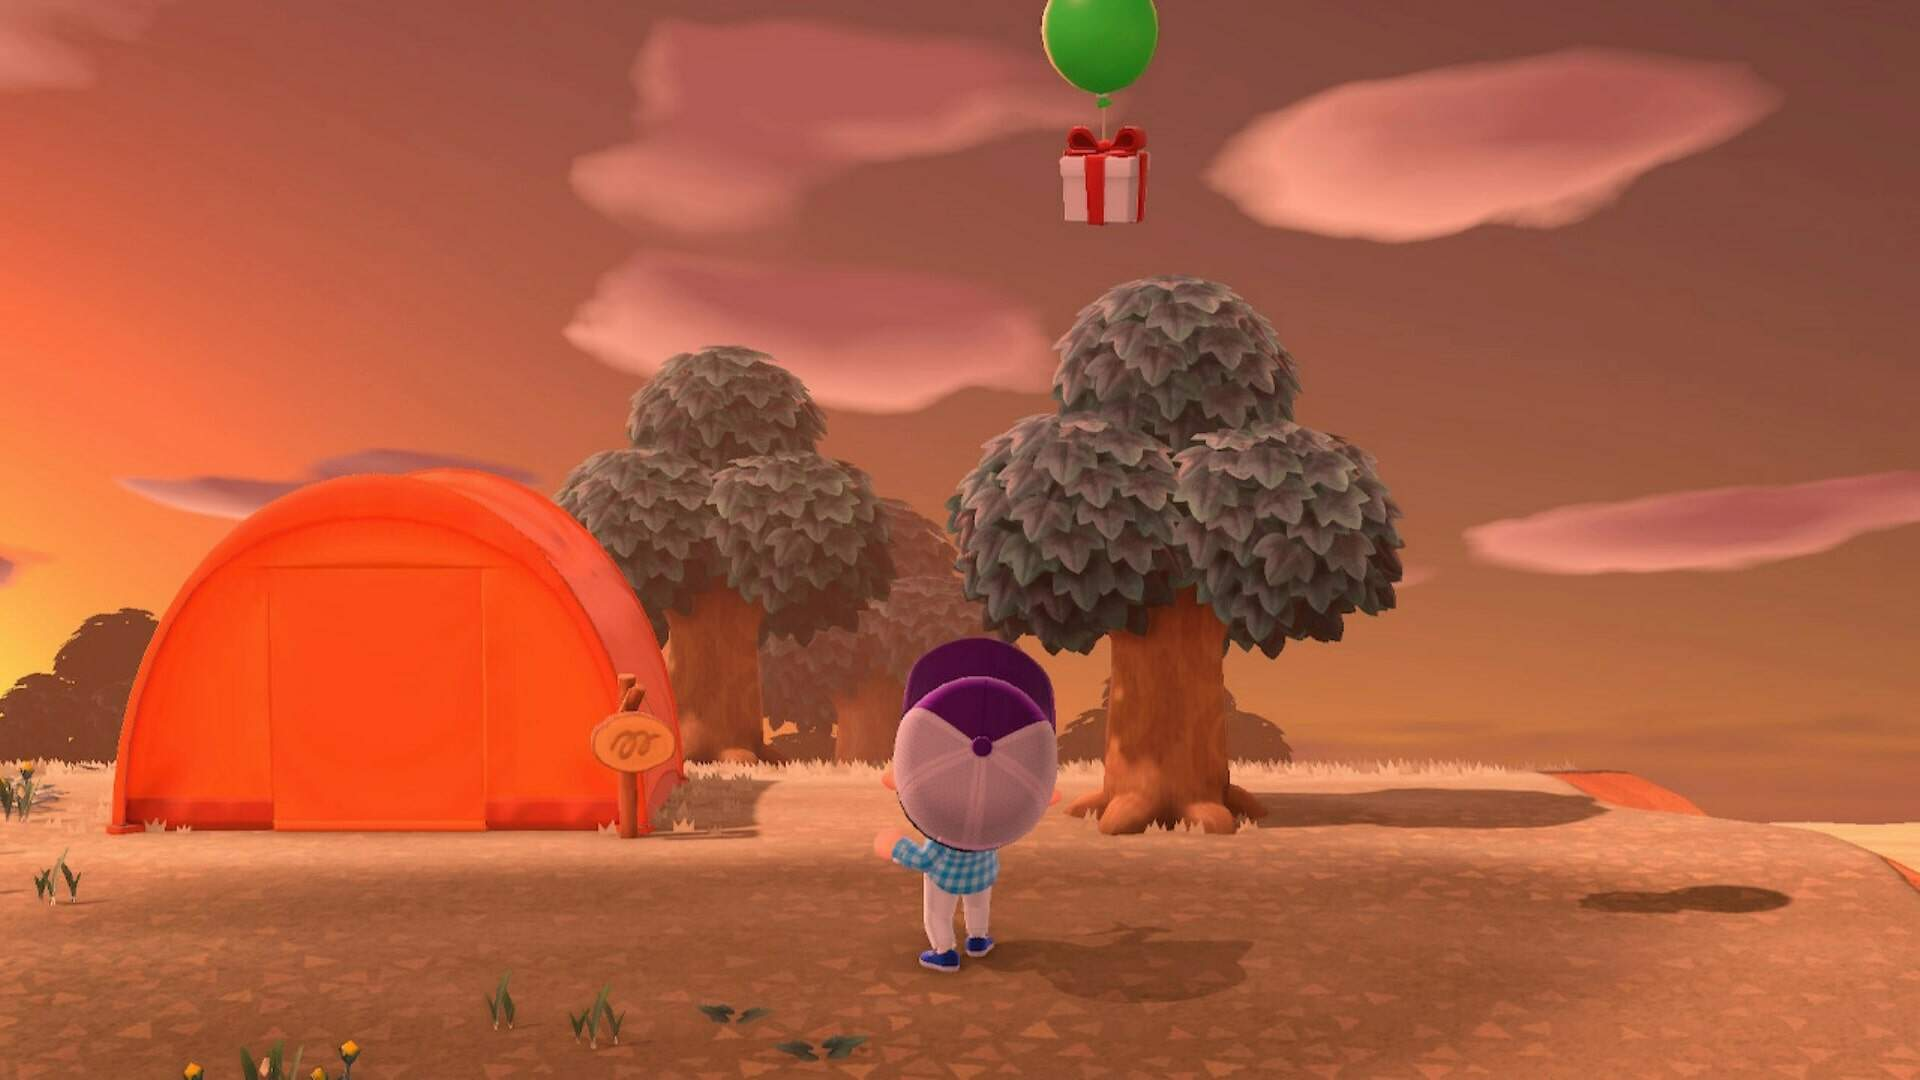 Latest Animal Crossing: New Horizons Patch Fixes a Pesky Balloon Bug